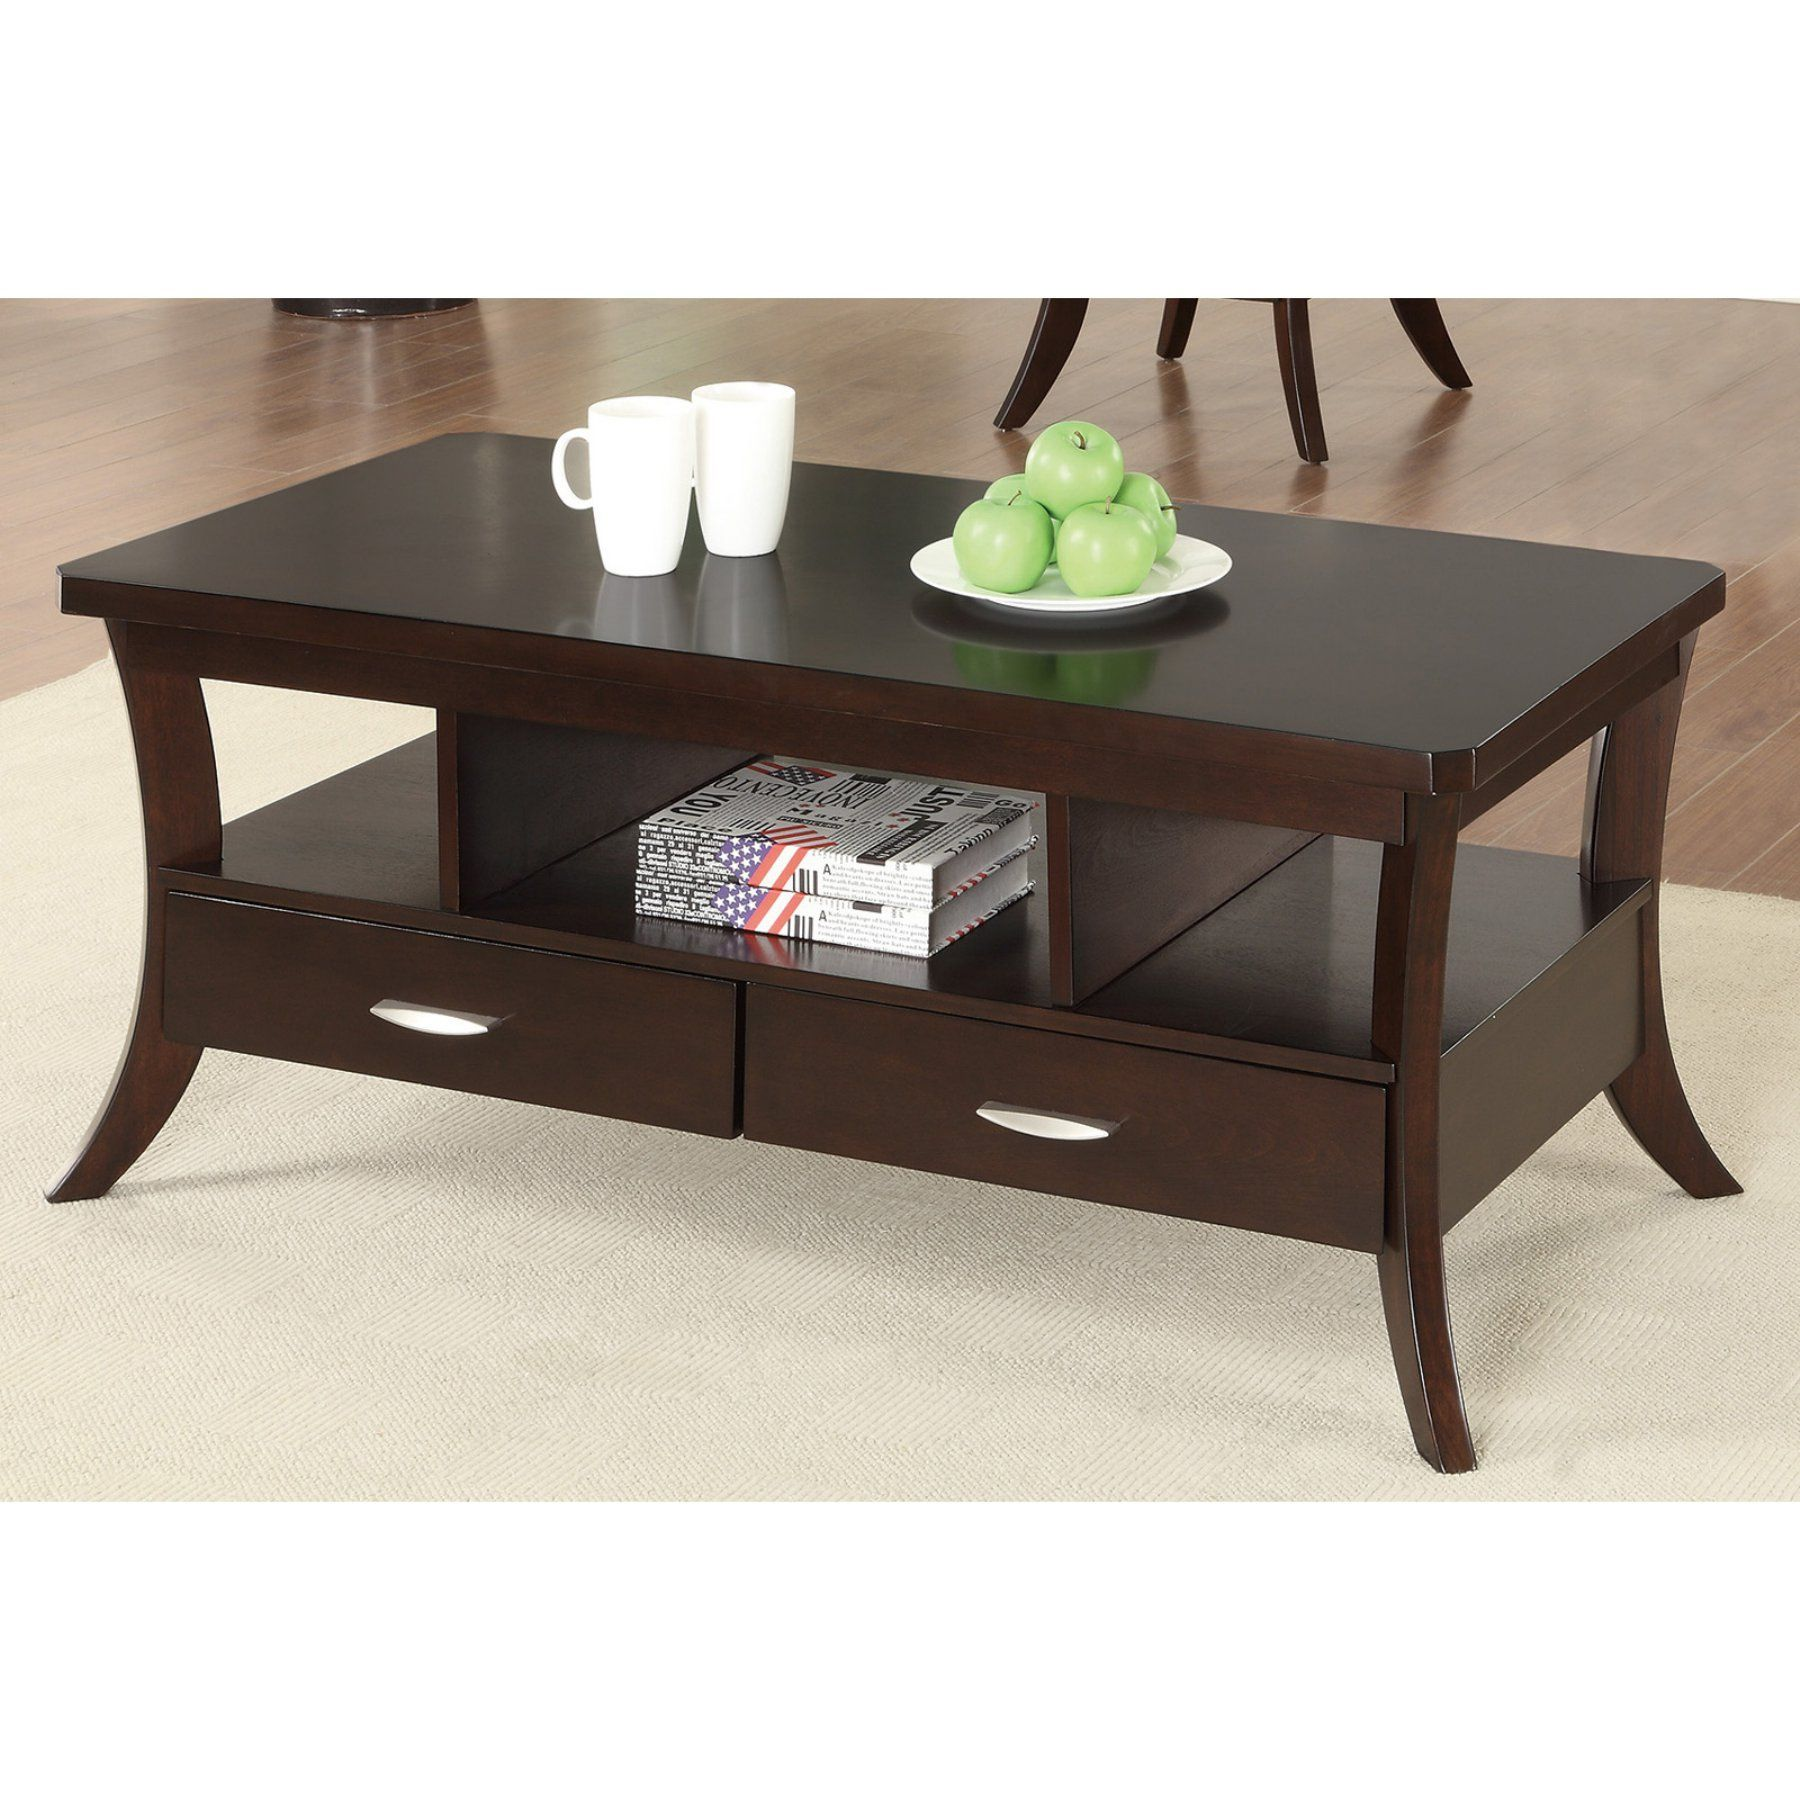 Coaster furniture wood coffee table espresso 702508